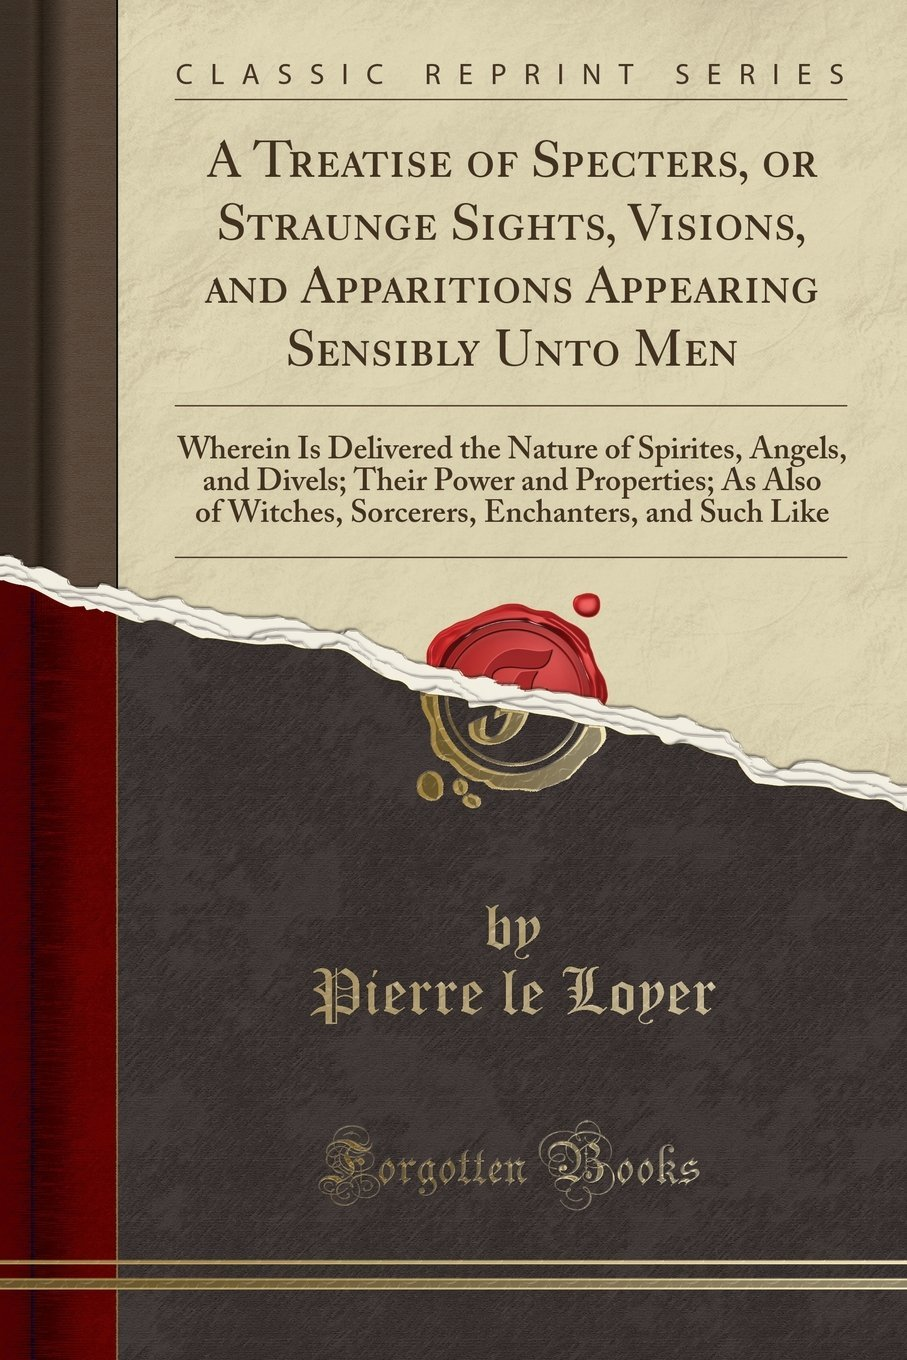 Download A Treatise of Specters, or Straunge Sights, Visions, and Apparitions Appearing Sensibly Unto Men: Wherein Is Delivered the Nature of Spirites, Angels, ... Witches, Sorcerers, Enchanters, and Such Like pdf epub